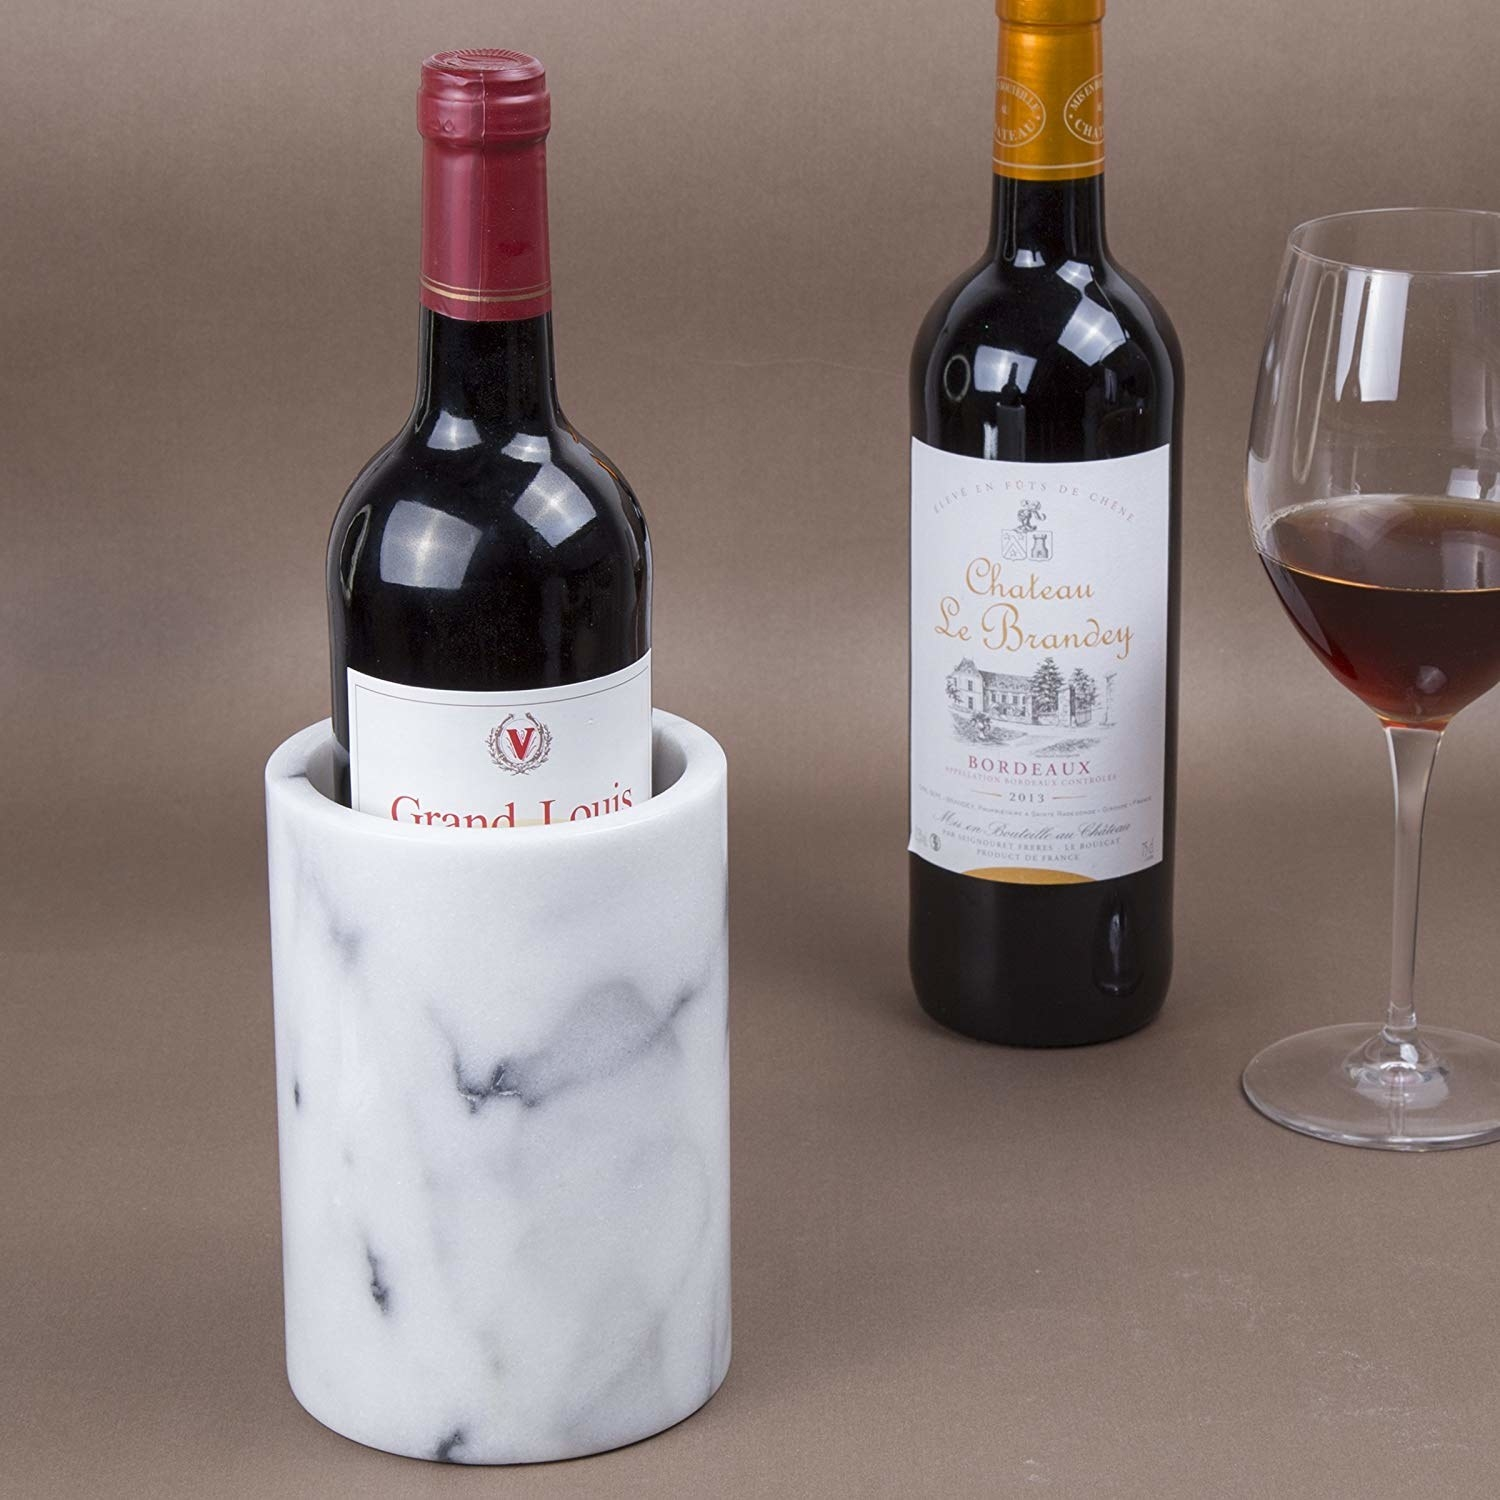 a bottle of wine in the marble crock next to another bottle and a full glass